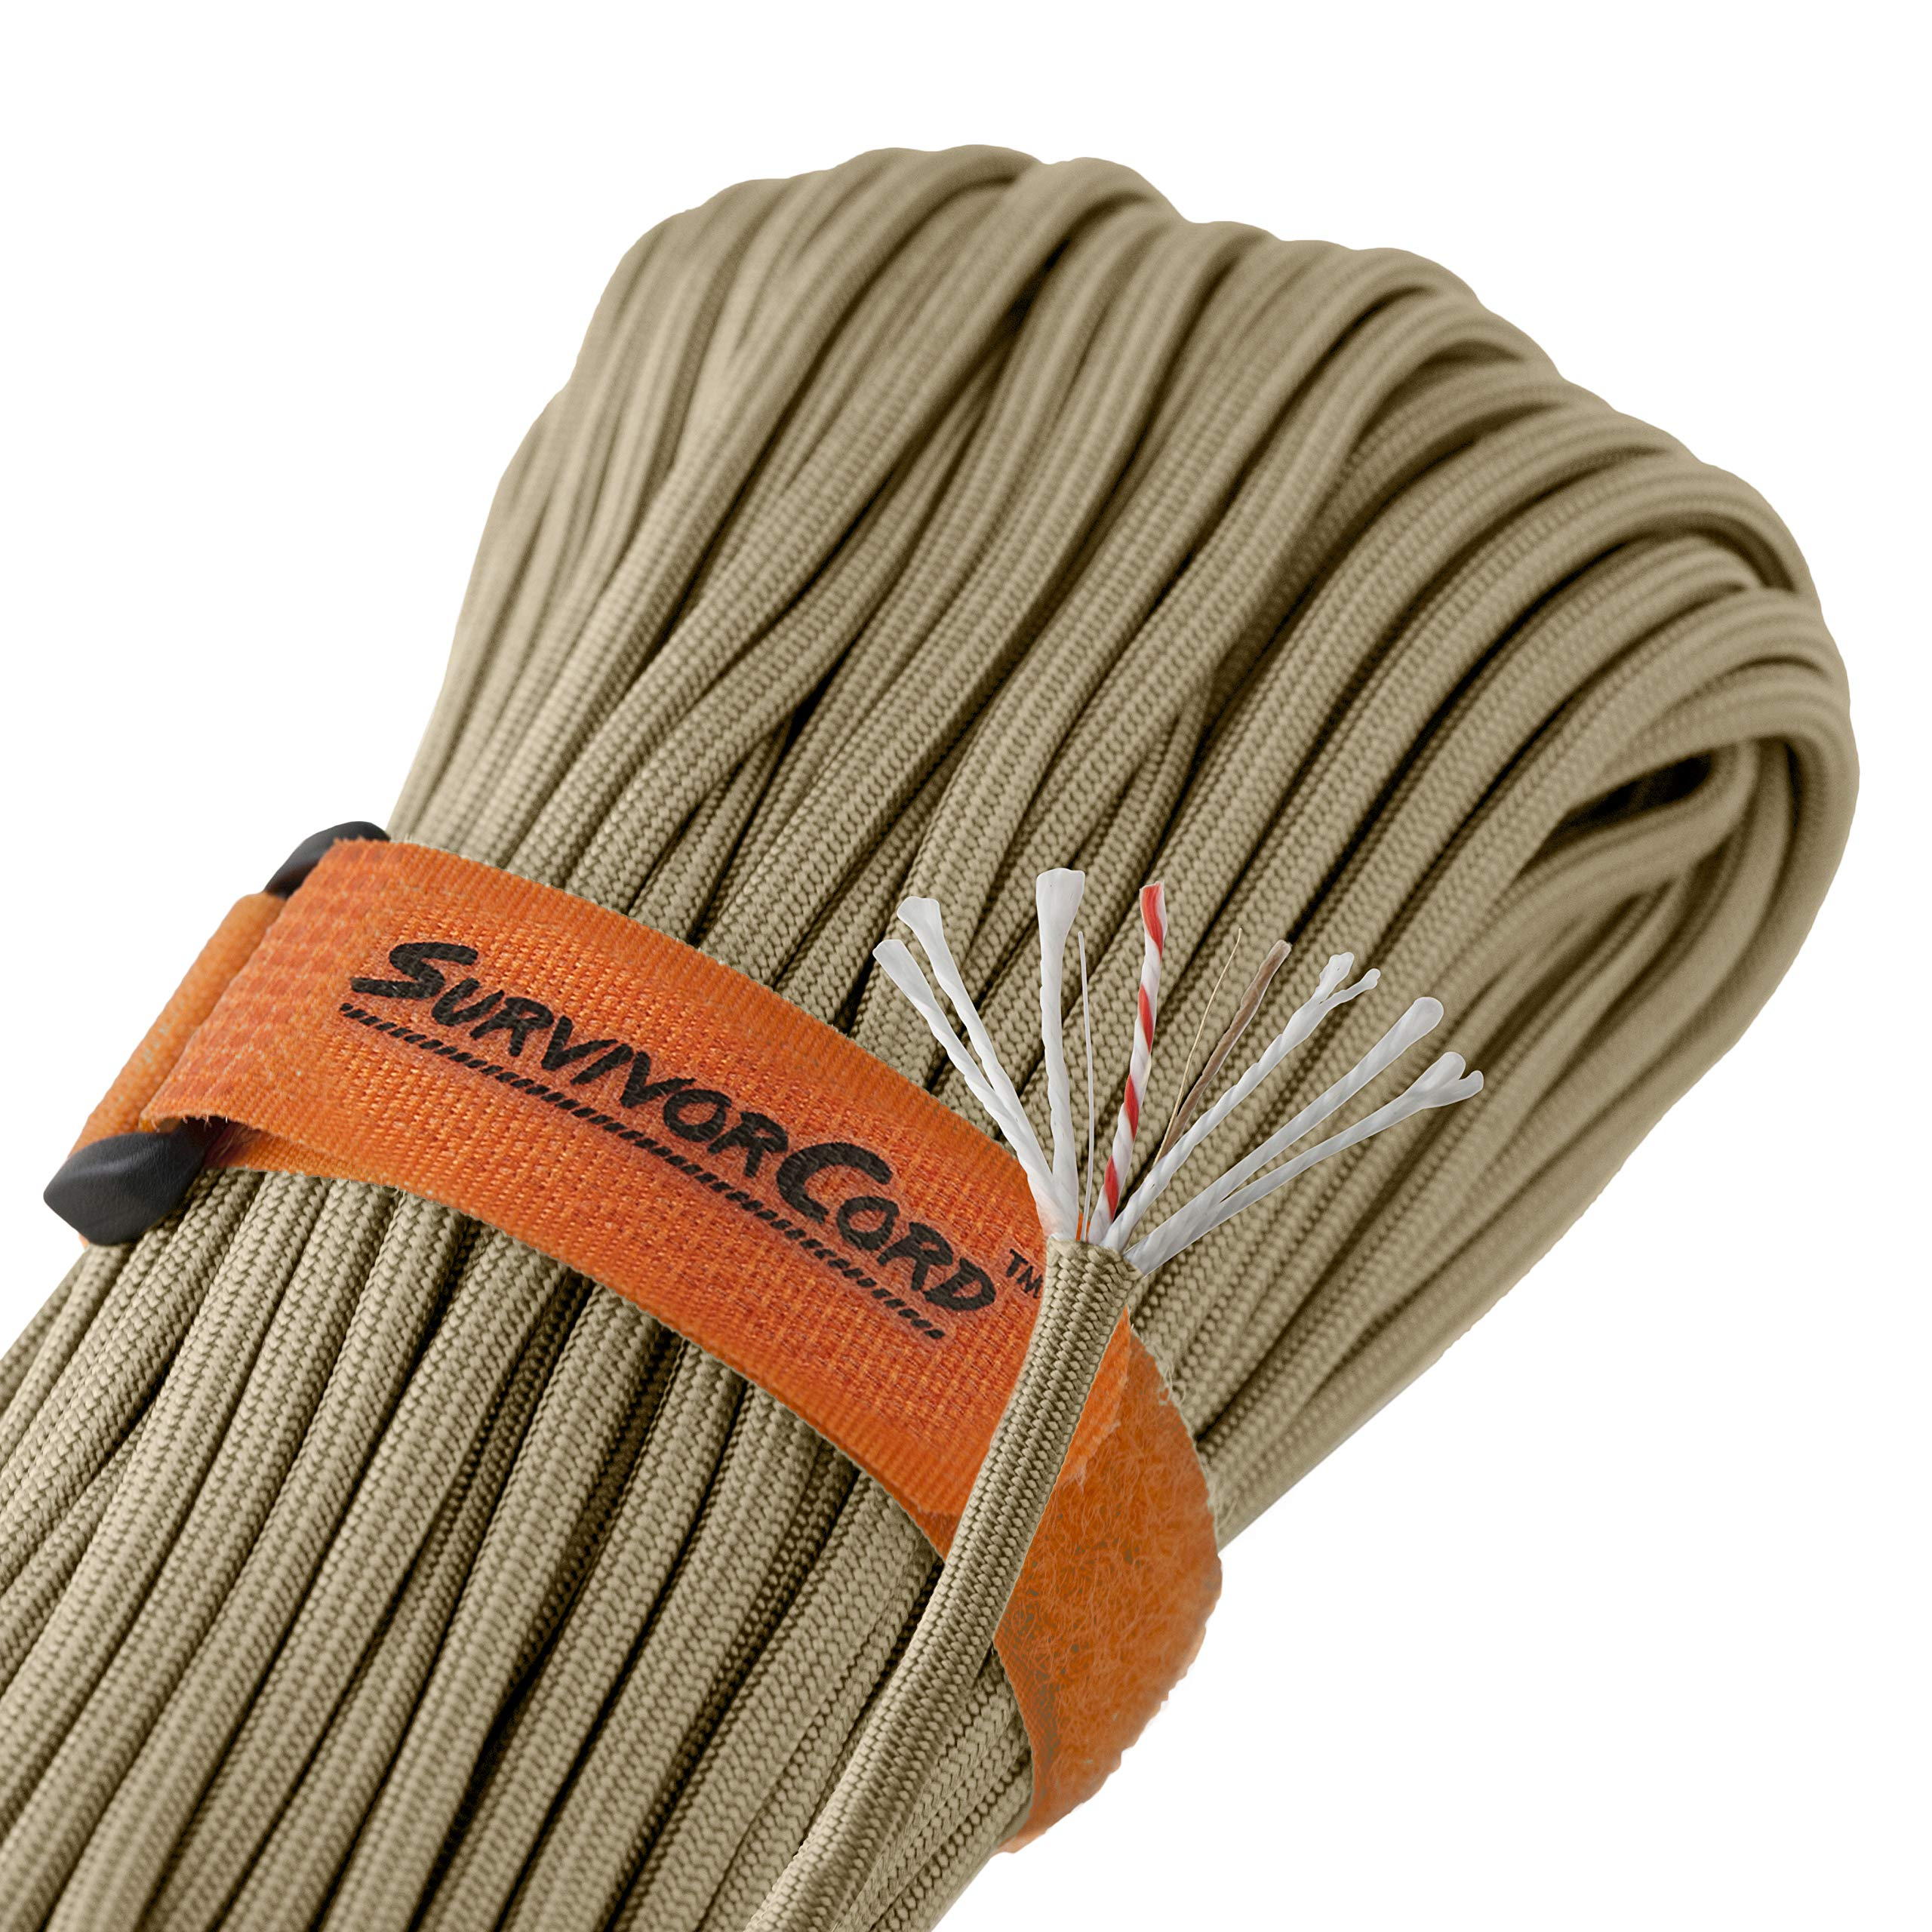 Titan SurvivorCord | Desert TAN | 103 Feet | Patented Military Type III 550 Paracord/Parachute Cord (3/16'' Diameter) with Integrated Fishing Line, Fire-Starter, and Utility Wire. by Titan Paracord (Image #2)